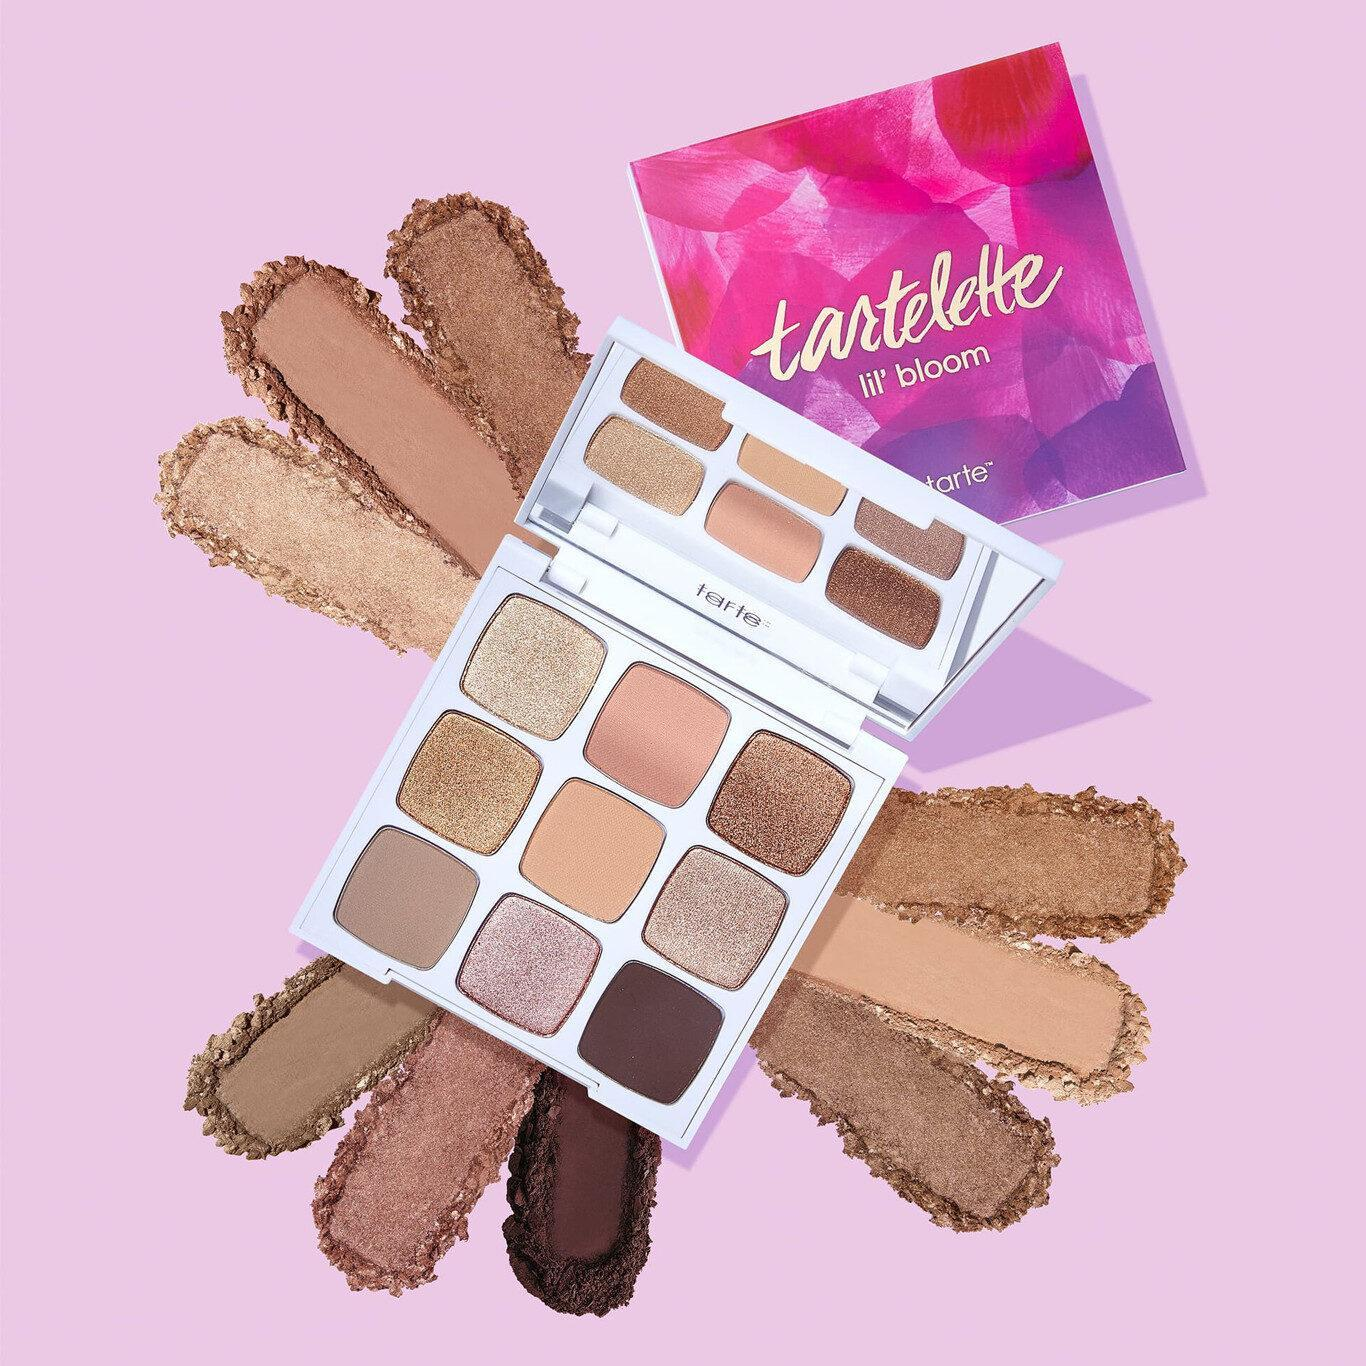 Tarte Cosmetics Tartelette Give, Gift & Get Amazonian Clay Eyeshadow lil' Bloom